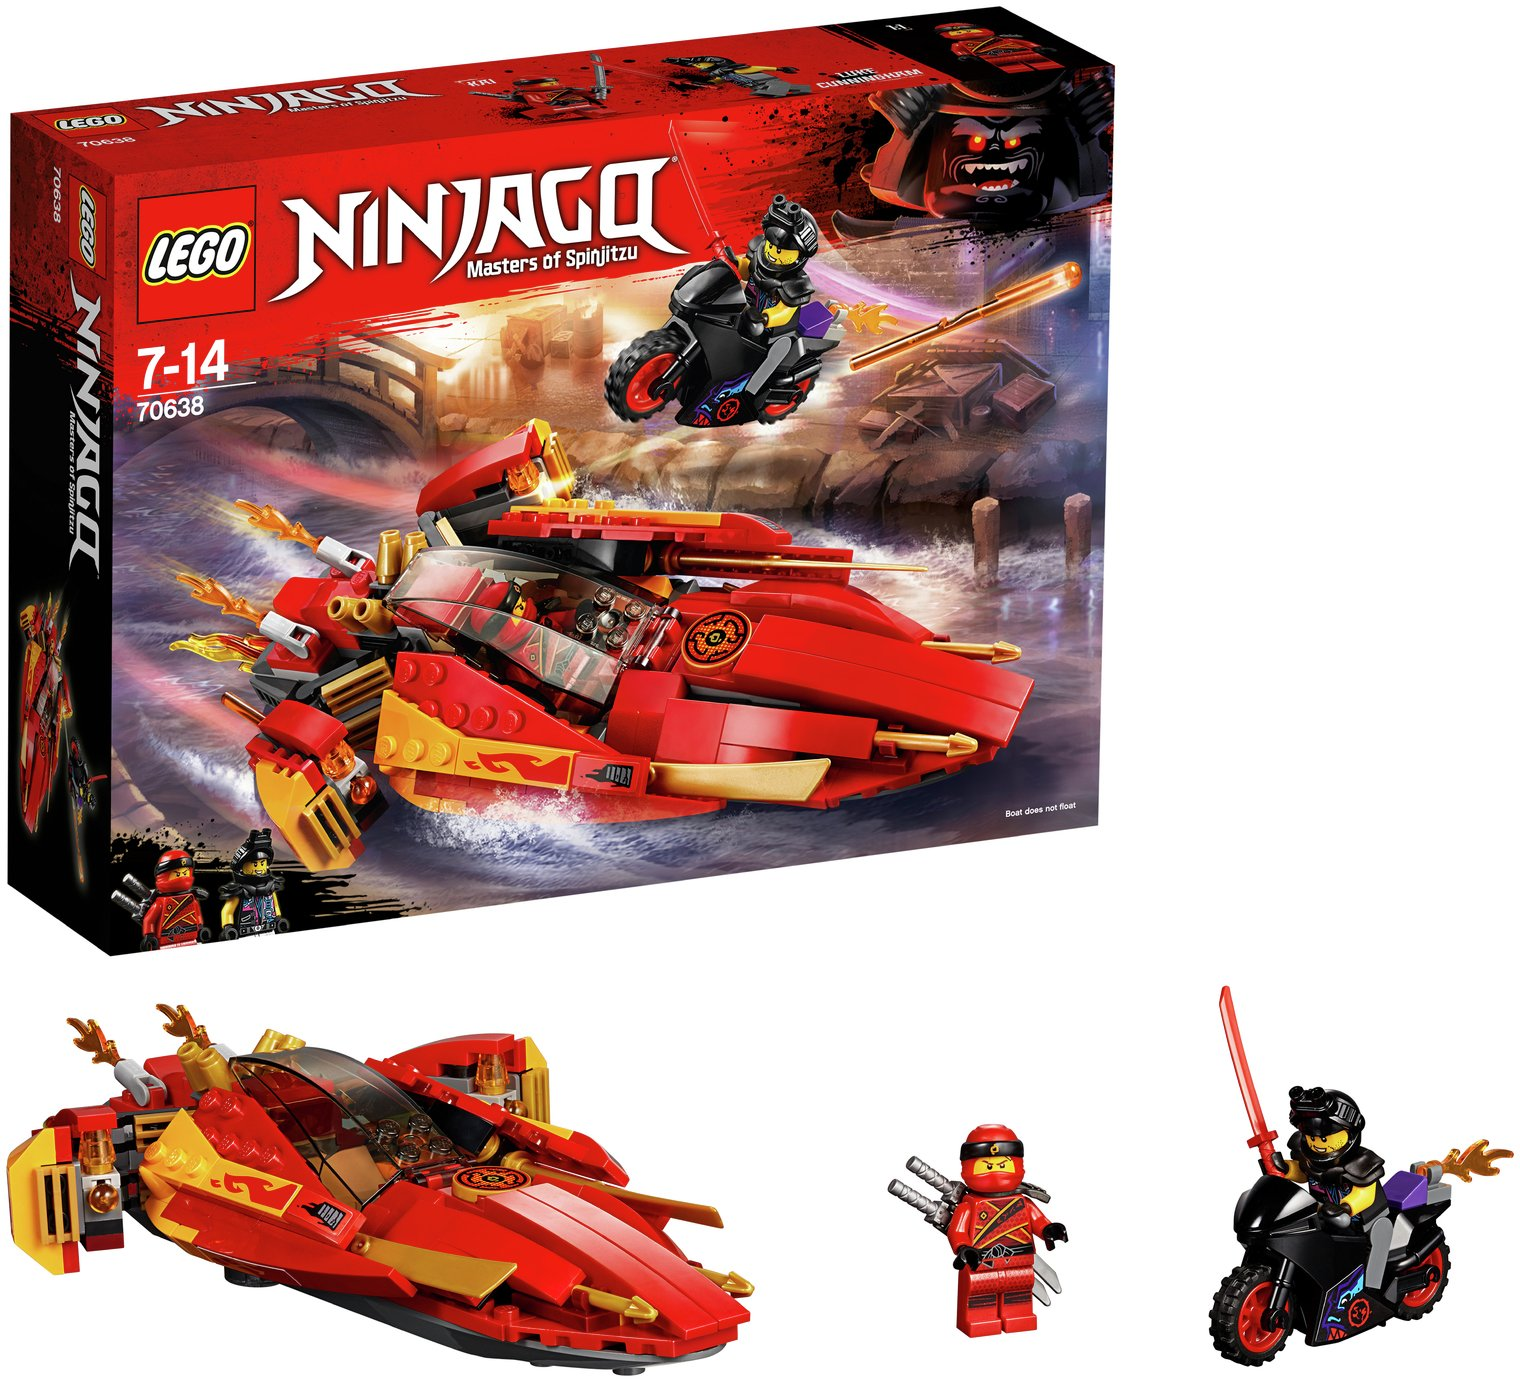 LEGO Ninjago Katana V11 Toy Boat & Bike Building Set - 70638